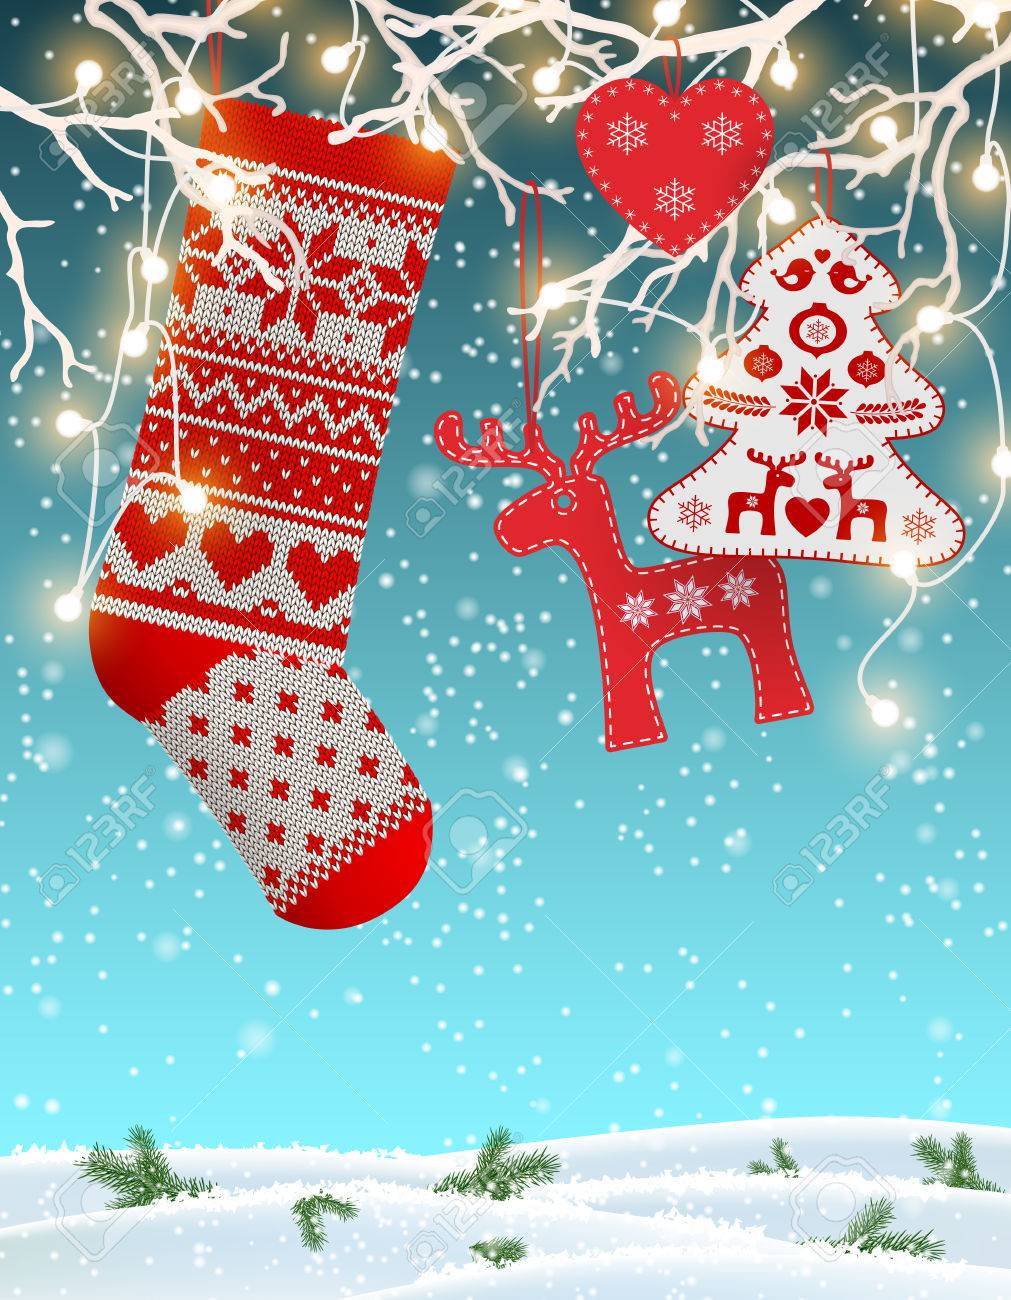 Knitted Christmas Stockings.Red Knitted Christmas Stocking With Nordic Patterns With Some